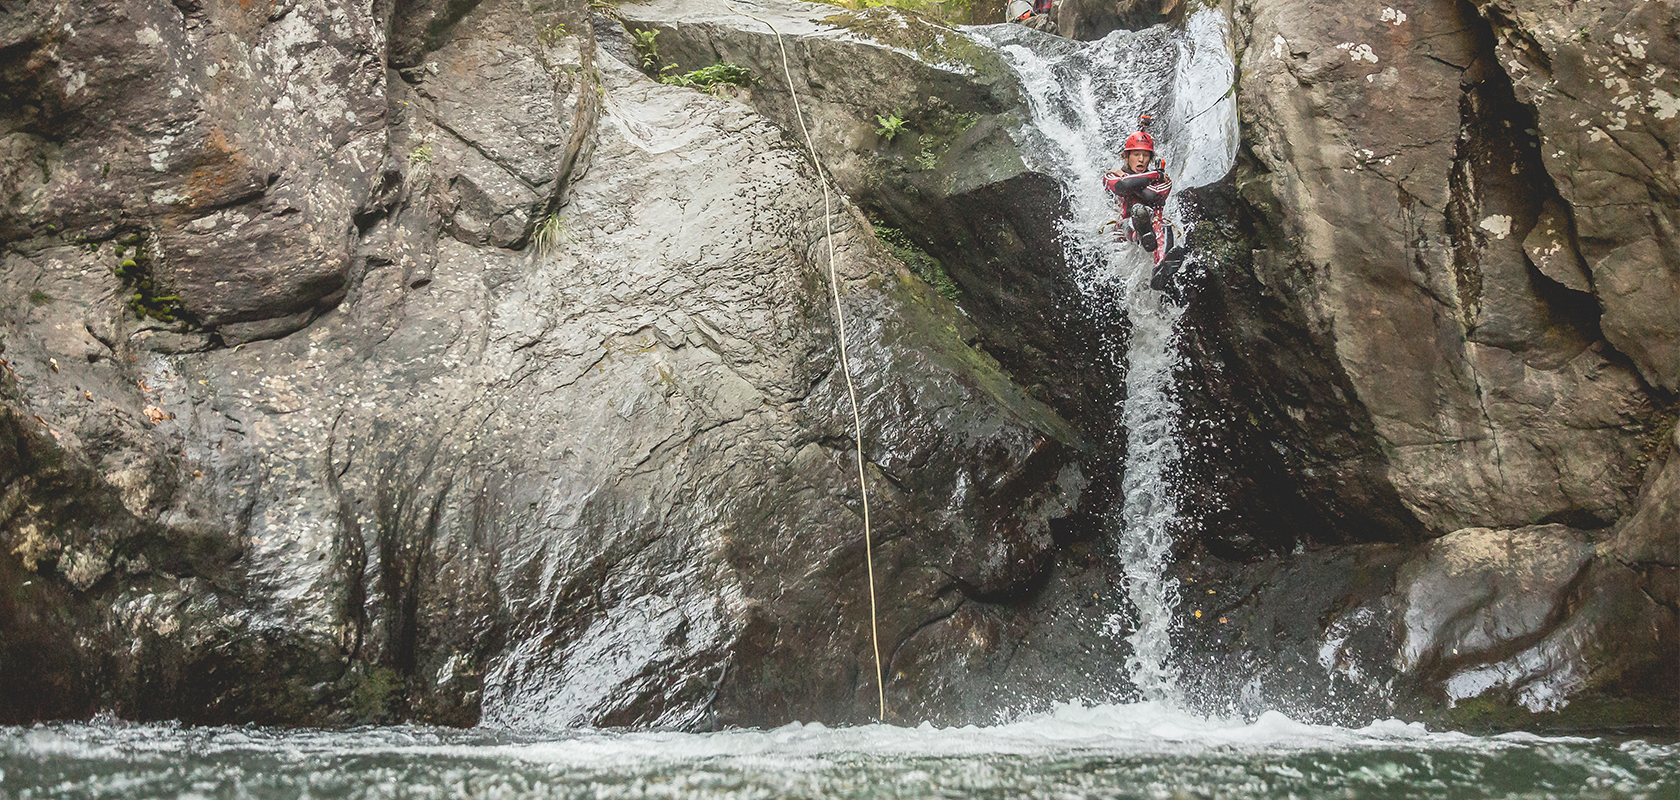 Canyoning tours in Tirol